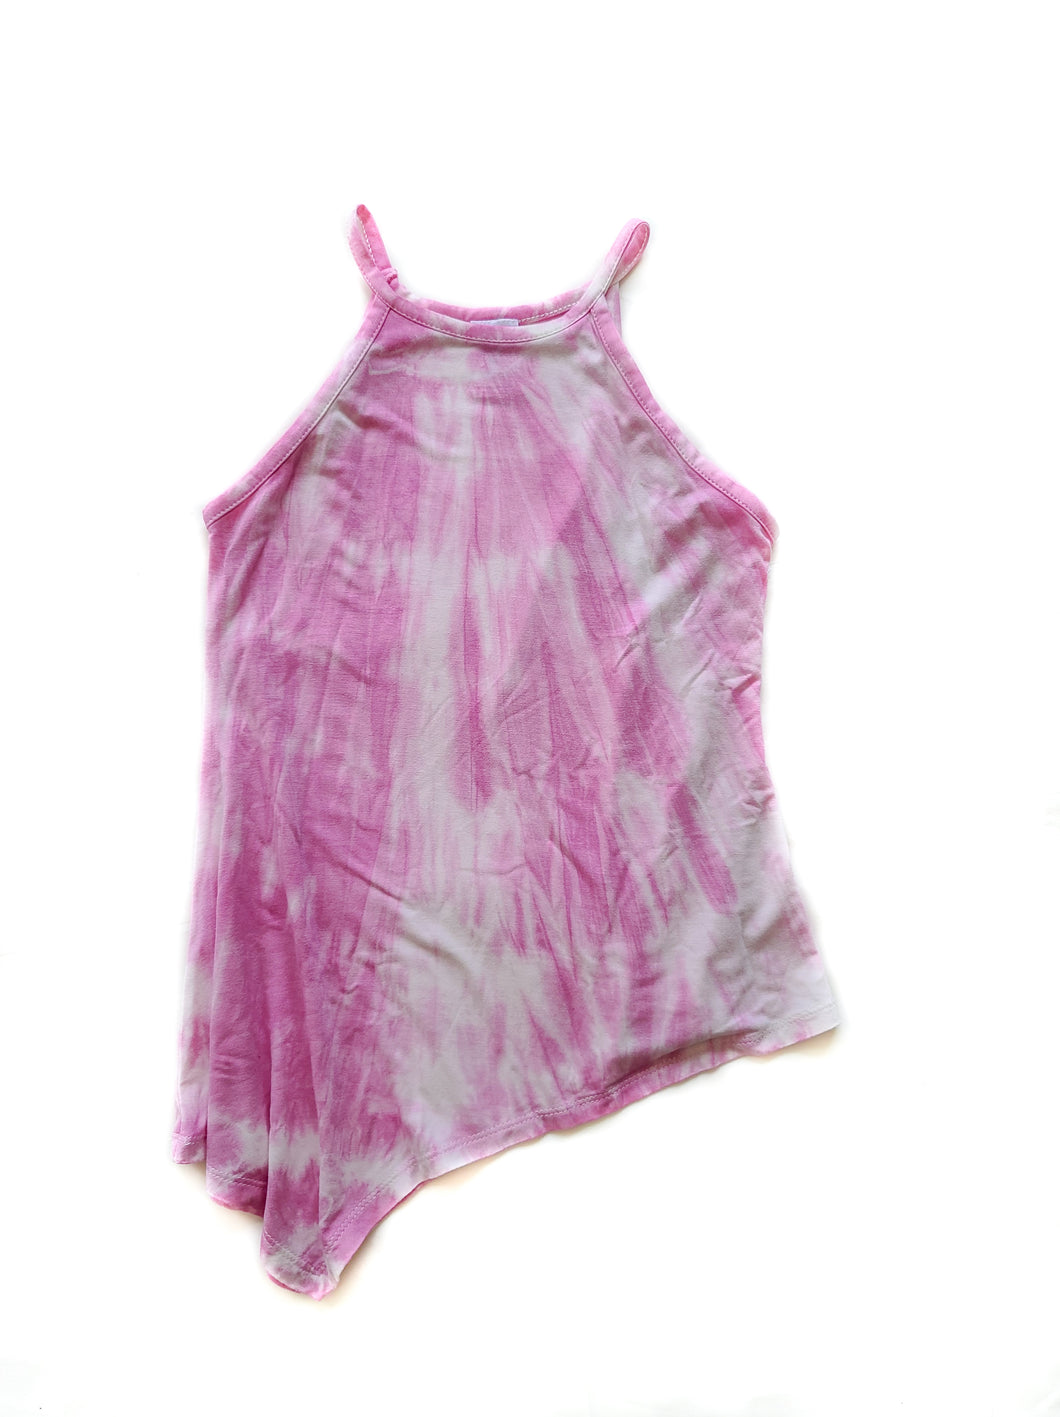 Asymmetrical Tie Dye Top